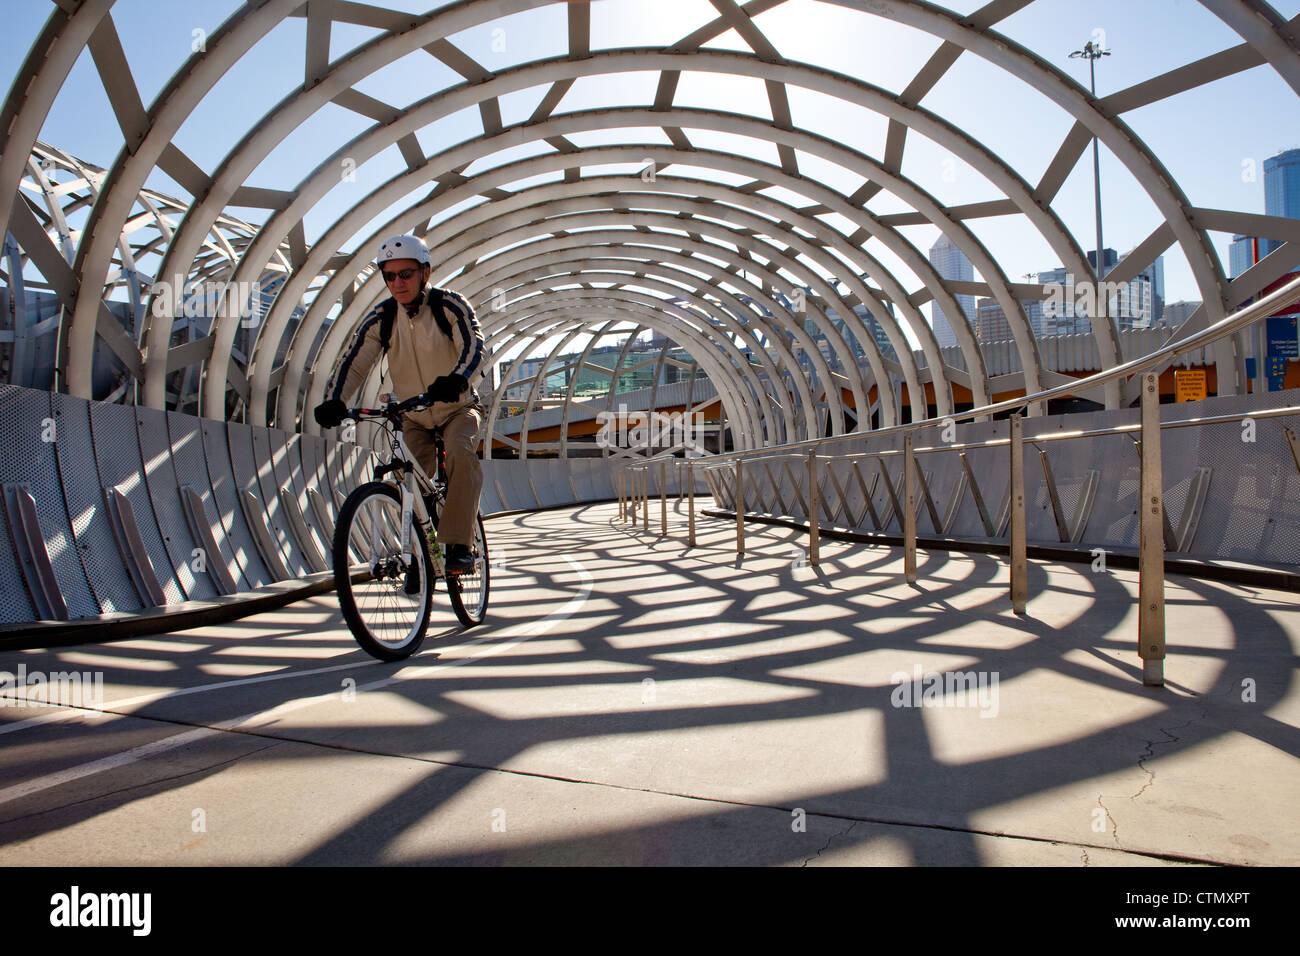 Melbourne webb bridge sur la rivière Yarra, docklands Harbour à Victoria en Australie à vélo Photo Stock